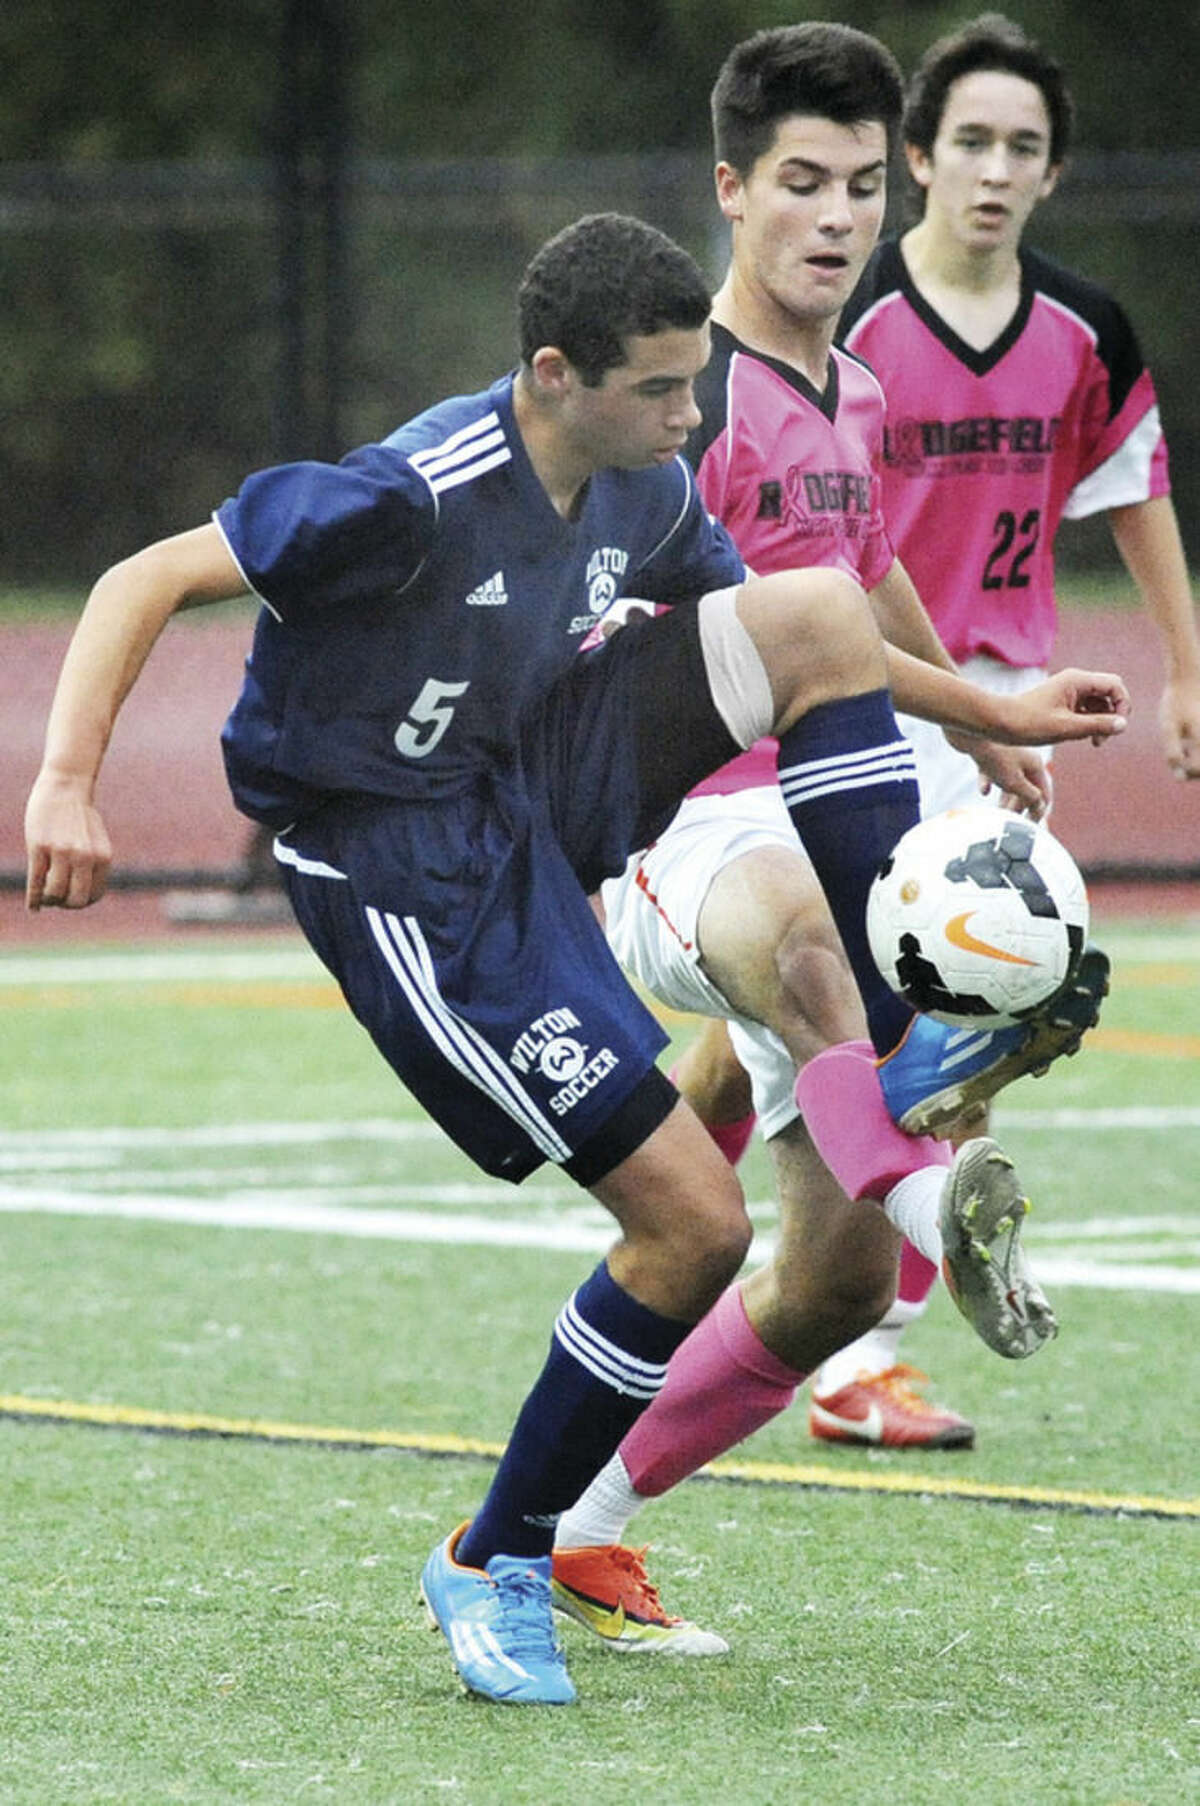 Hour photo/Matthew Vinci Wilton's Cole Hawthorne controls a ball, while Ridgefield's Andrew Papa sticks his foot in during Tuesday's game.